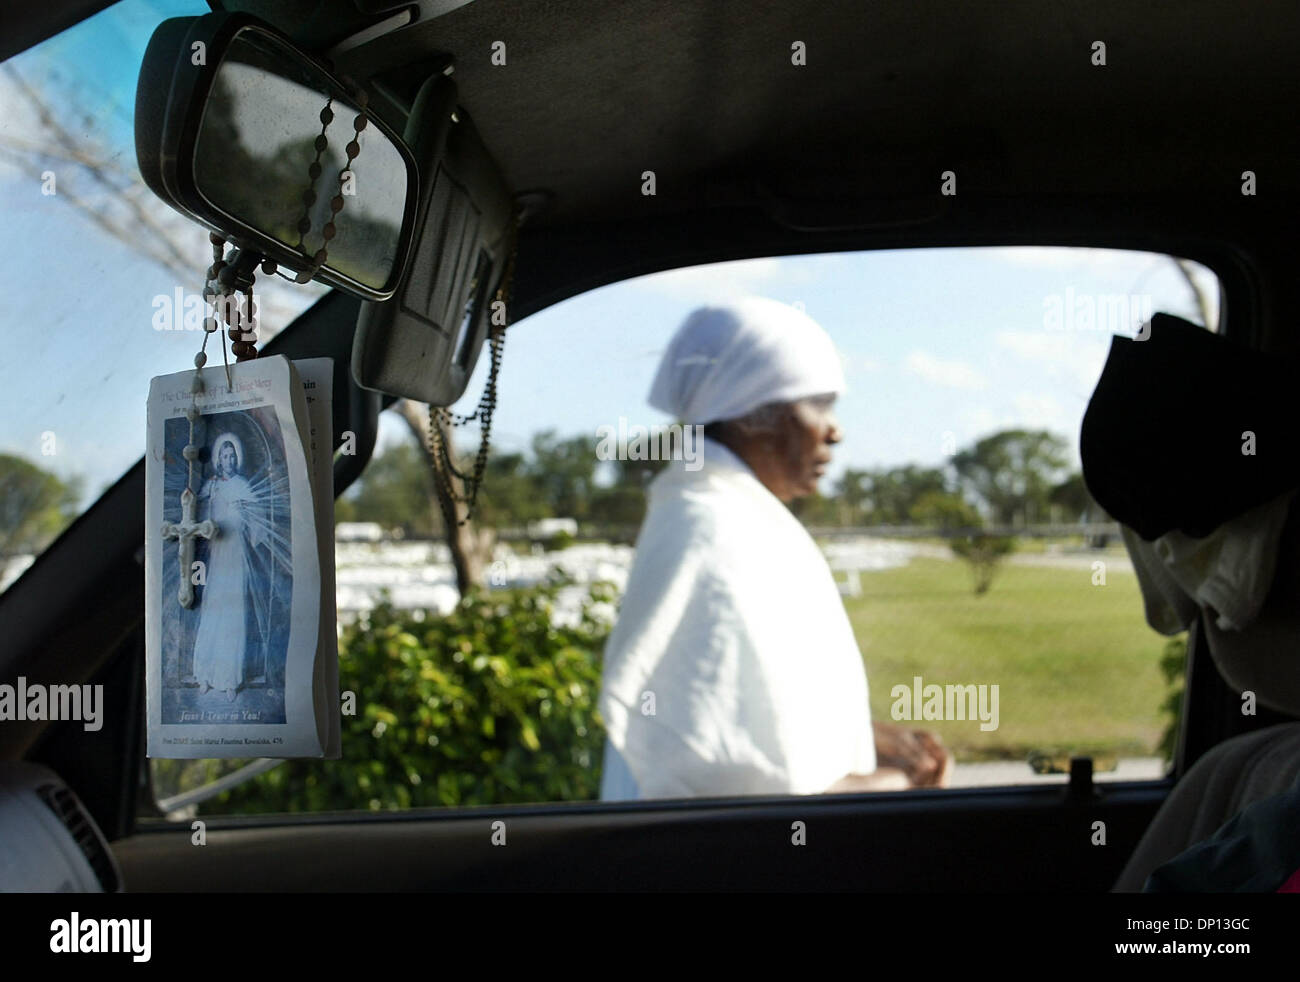 Apr 14, 2006; Delray Beach, FL, USA; One of the mourning women walks past a truck with an image of Christ and a rosary hanging from the rear-view mirror as she prepares to embark on a living Stations of the Cross with other members of Our Lady of Perpetual Help Catholic Haitian Mission in remembrance of Good Friday.  Mandatory Credit: Photo by Chris Matula/Palm Beach Post/ZUMA Pres - Stock Image